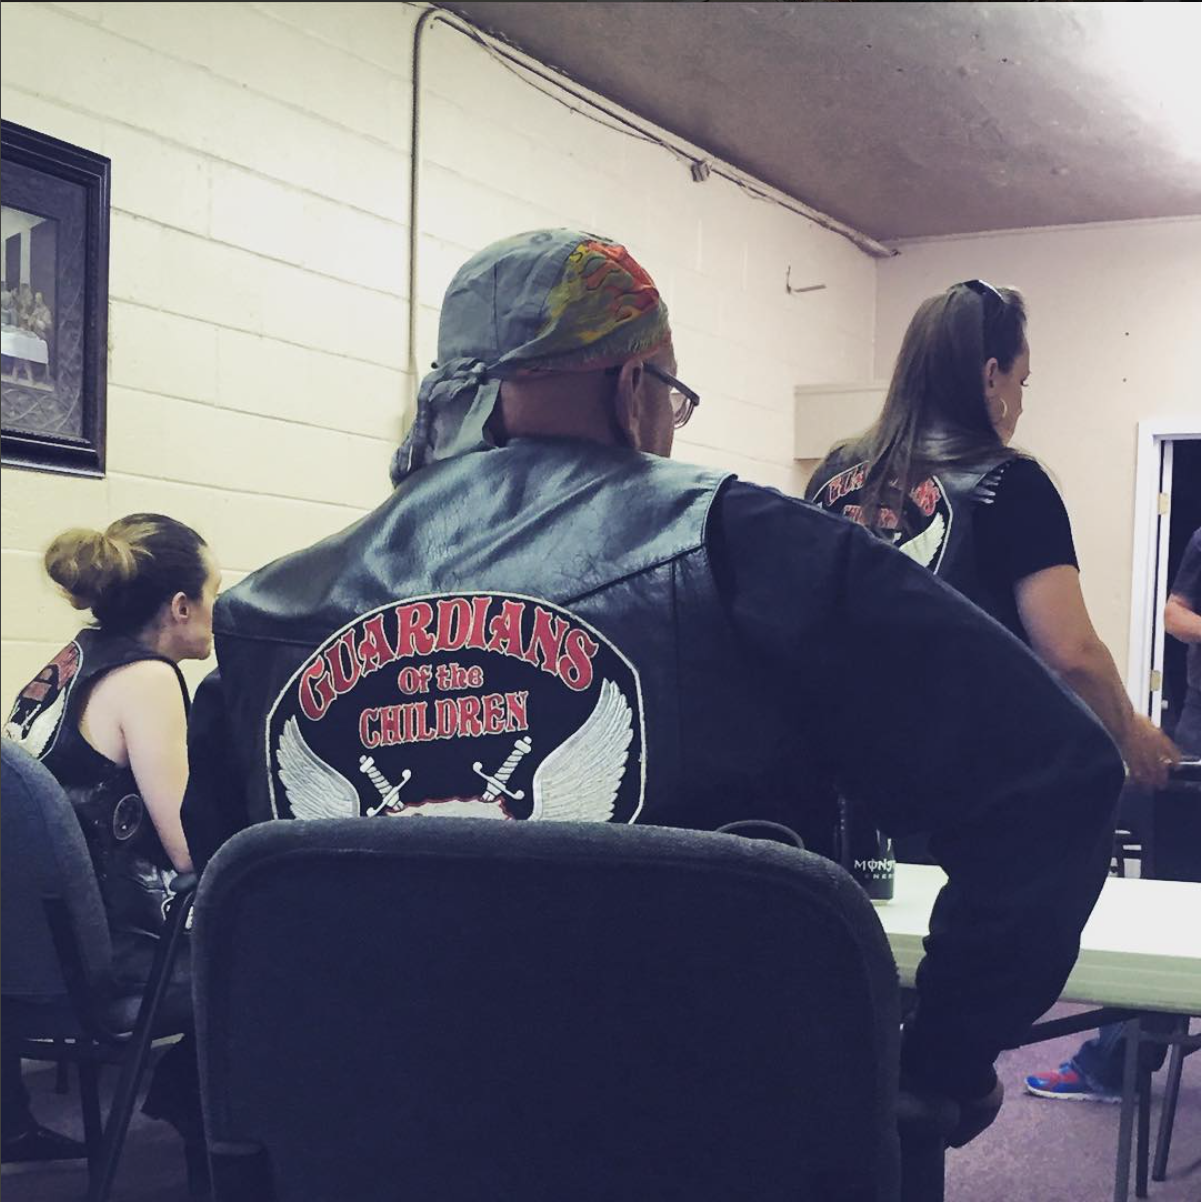 """Odessa, TX. Guardians of the Children is a non-profit group of bikers who advocate for child victims of all kinds of abuse in the Permian Basin. Compared to more highly populated areas of Texas, the Permian Basin has high rates of child abuse and neglect. In 2014 there were more than 2030 confirmed cases of child abuse ( and these are just the reported cases). All the GoC members and kids go by road names. When she was 12, """"Bugg"""" was brutally beaten by her father's girlfriend. Worse yet, her father didn't believe her when she told him. She receded into her shell, isolating from friends and family. After joining GoC, things changed. """"It made me feel like I had a sense of family again, like I wasn't so alone after all,"""" she said. She is now almost 18 and plans to become a Guardian herself once she comes of age. Full story here:  http://www.mrt.com/news/local/article_dd9799ae-fea2-11e5-aad7-53fe10f238e3.html?TNNoMobile  #SnapshotLives  #odessa  #midland  #texas  #childabuse  #guardiansofthechildren  #stopchildabusenow"""